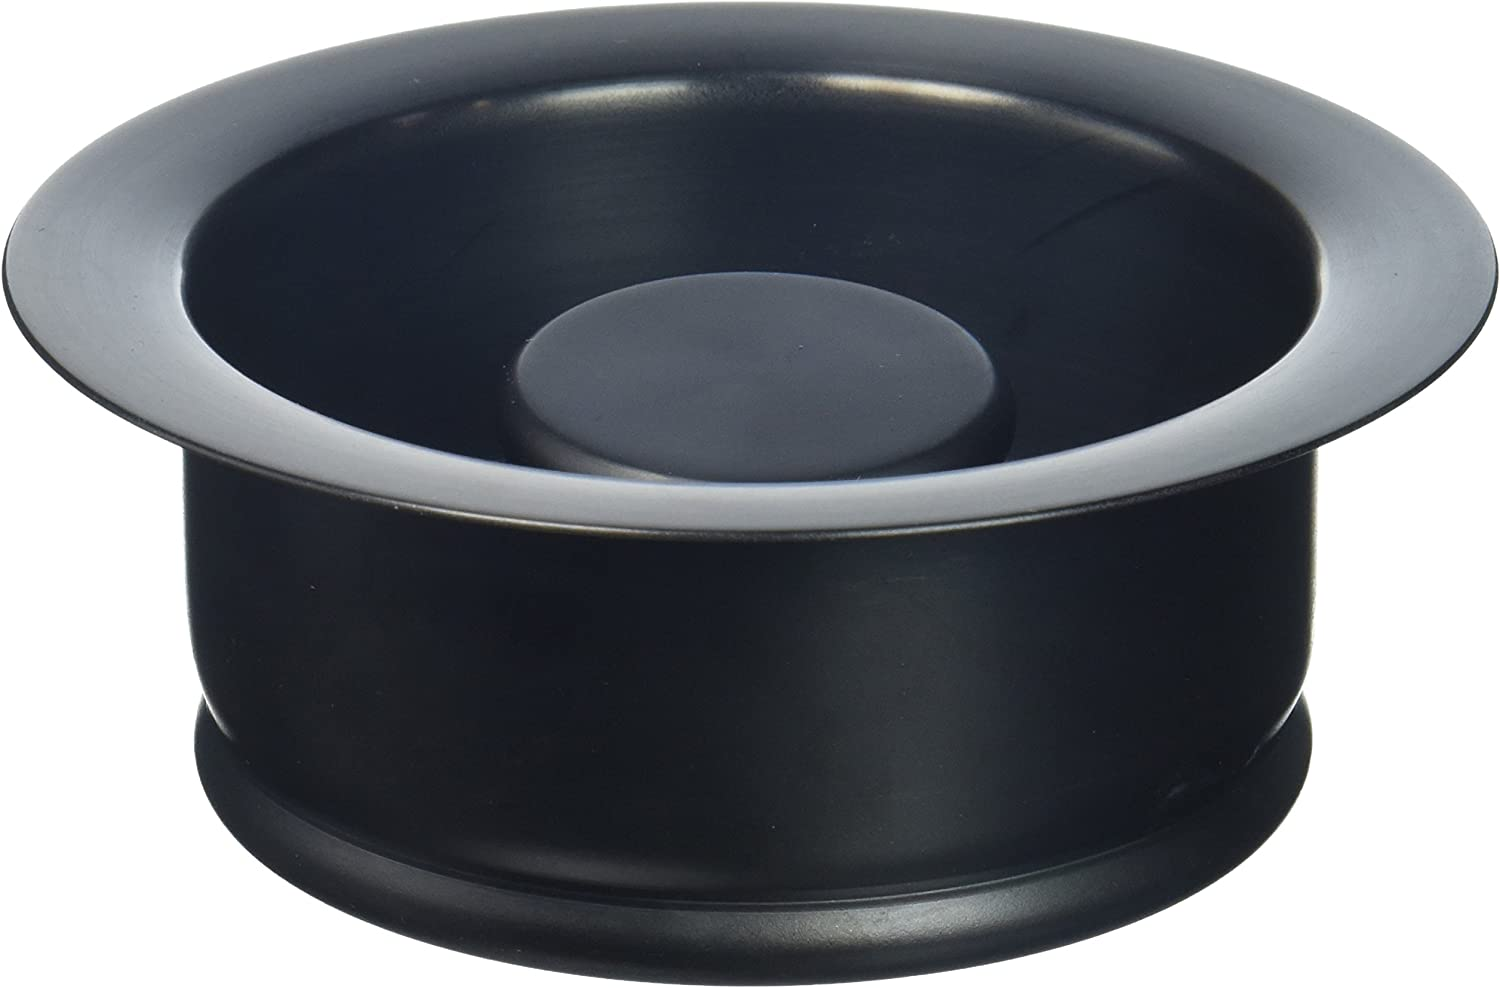 Kingston Brass BS3005 Made to Match Garbage Disposal Flange, Oil Rubbed Bronze